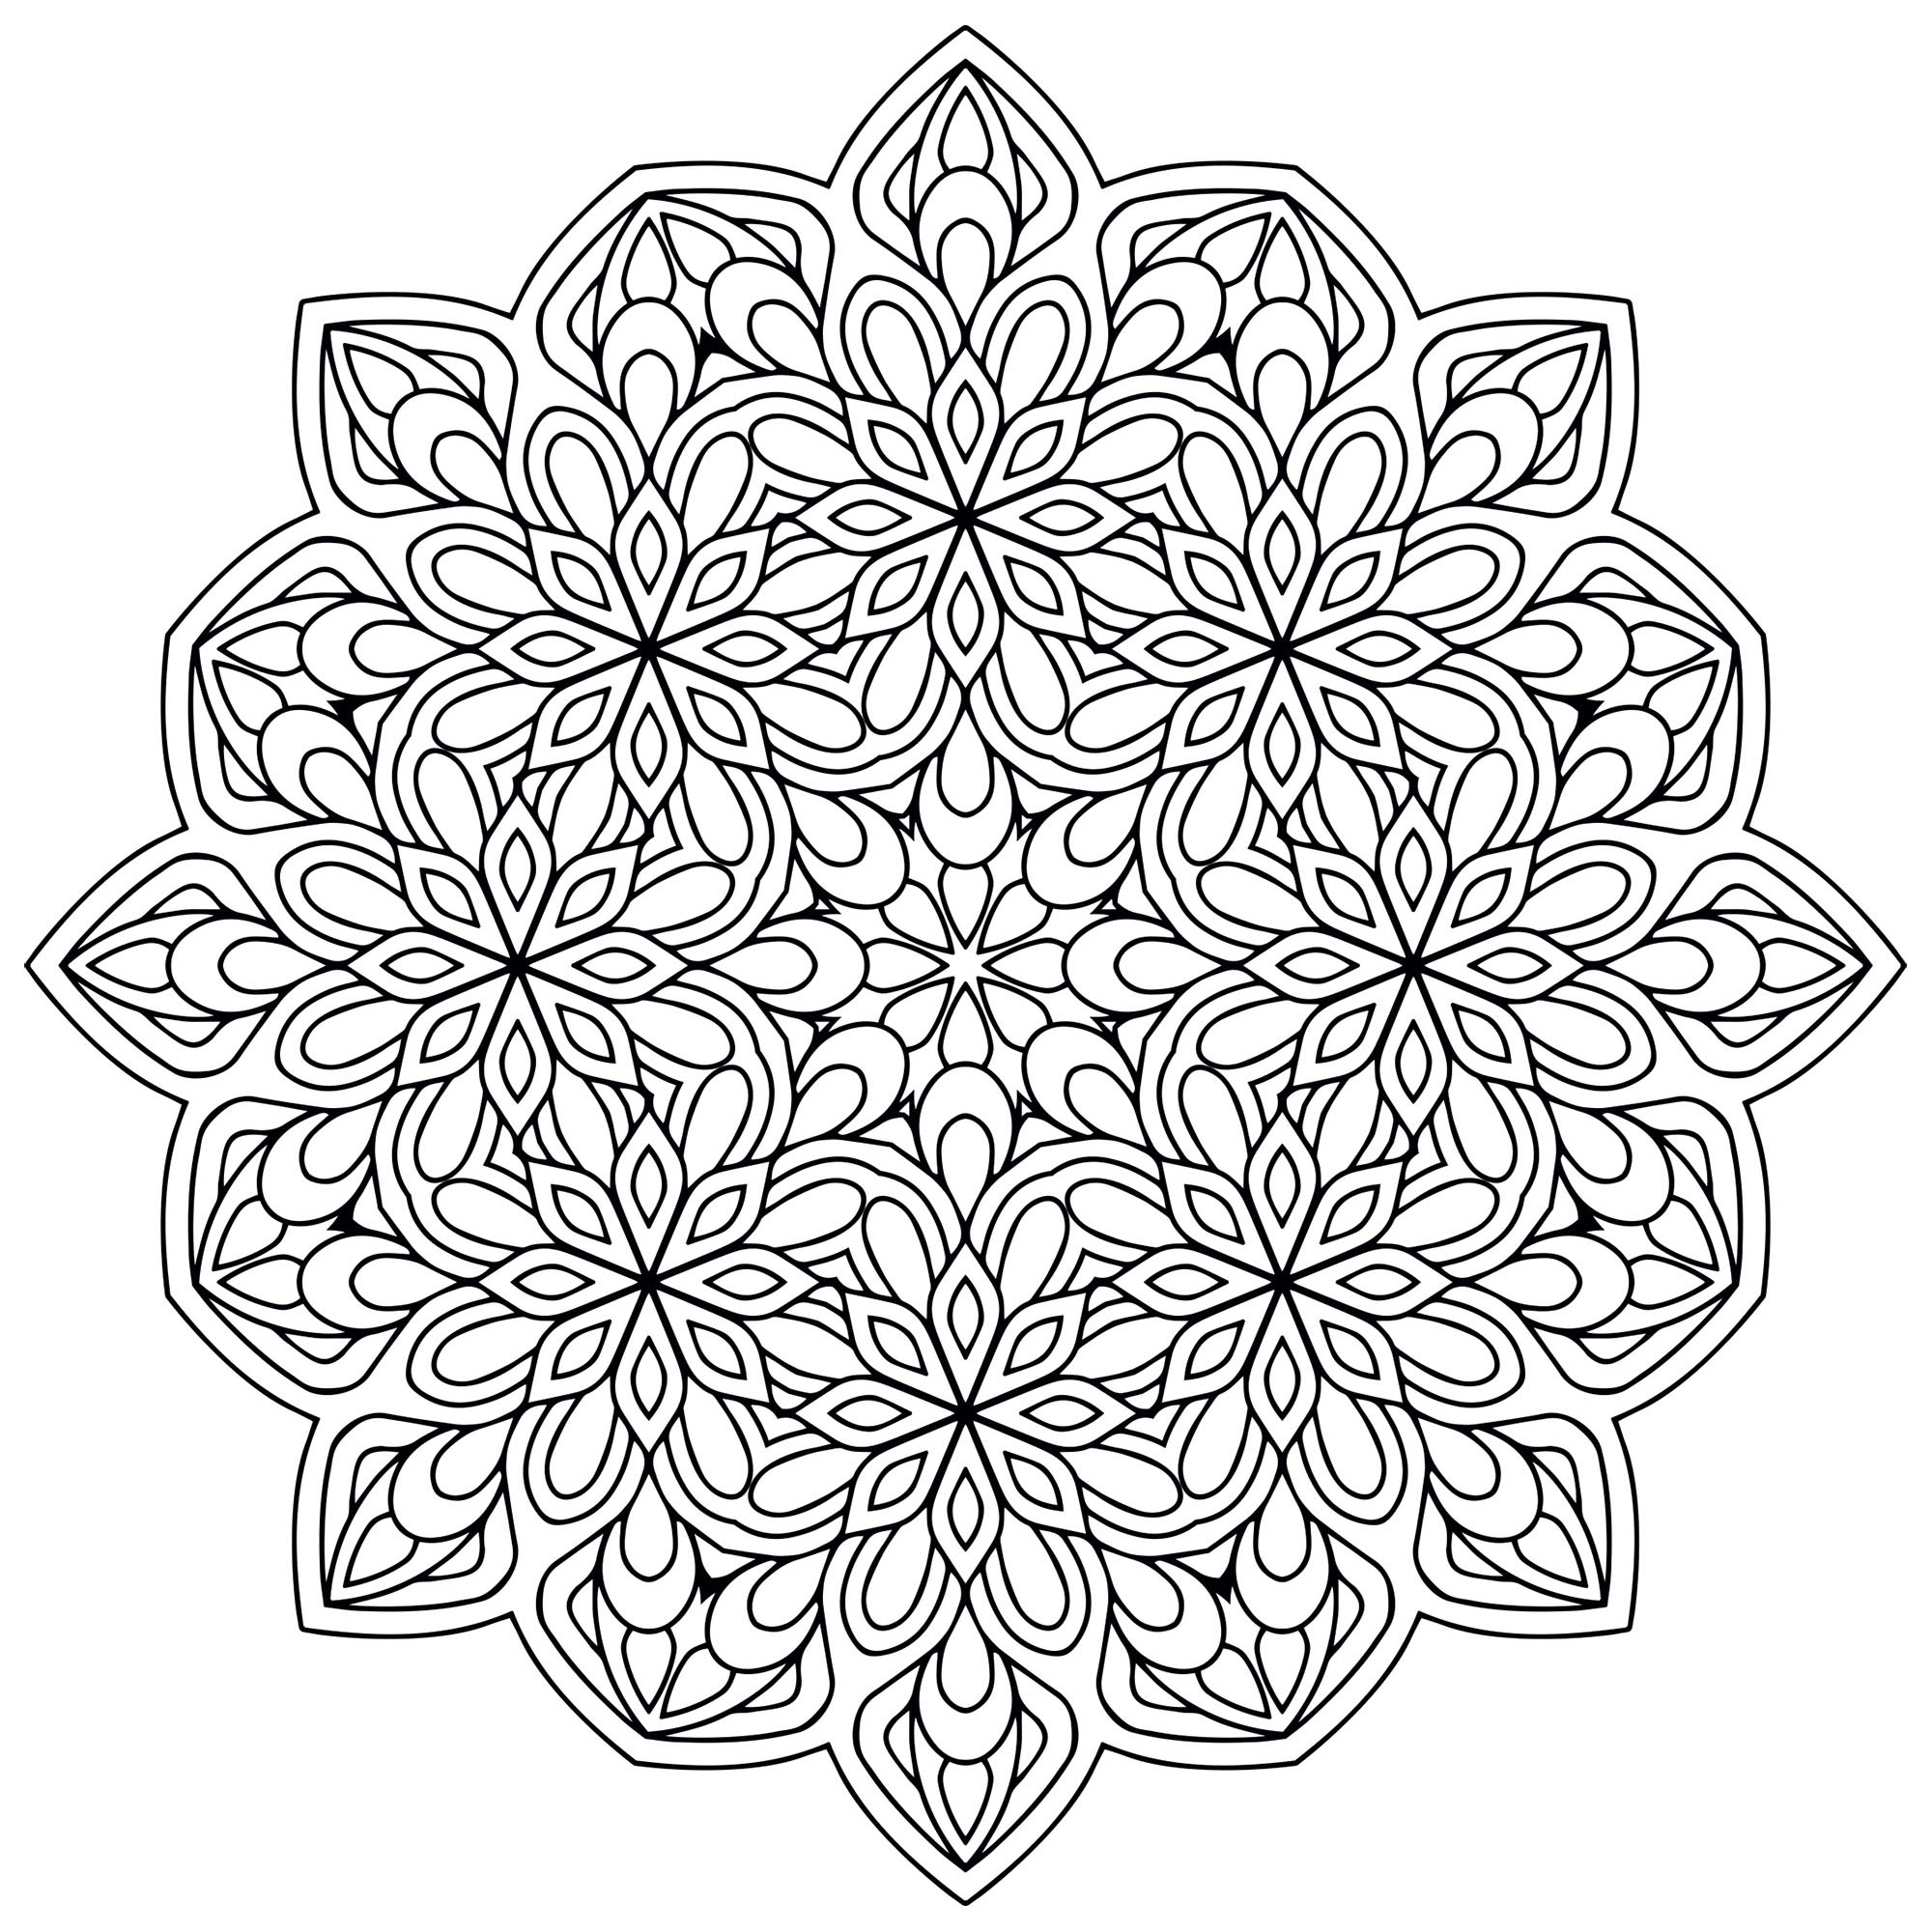 mandala normal difficulty simple mandalas 100